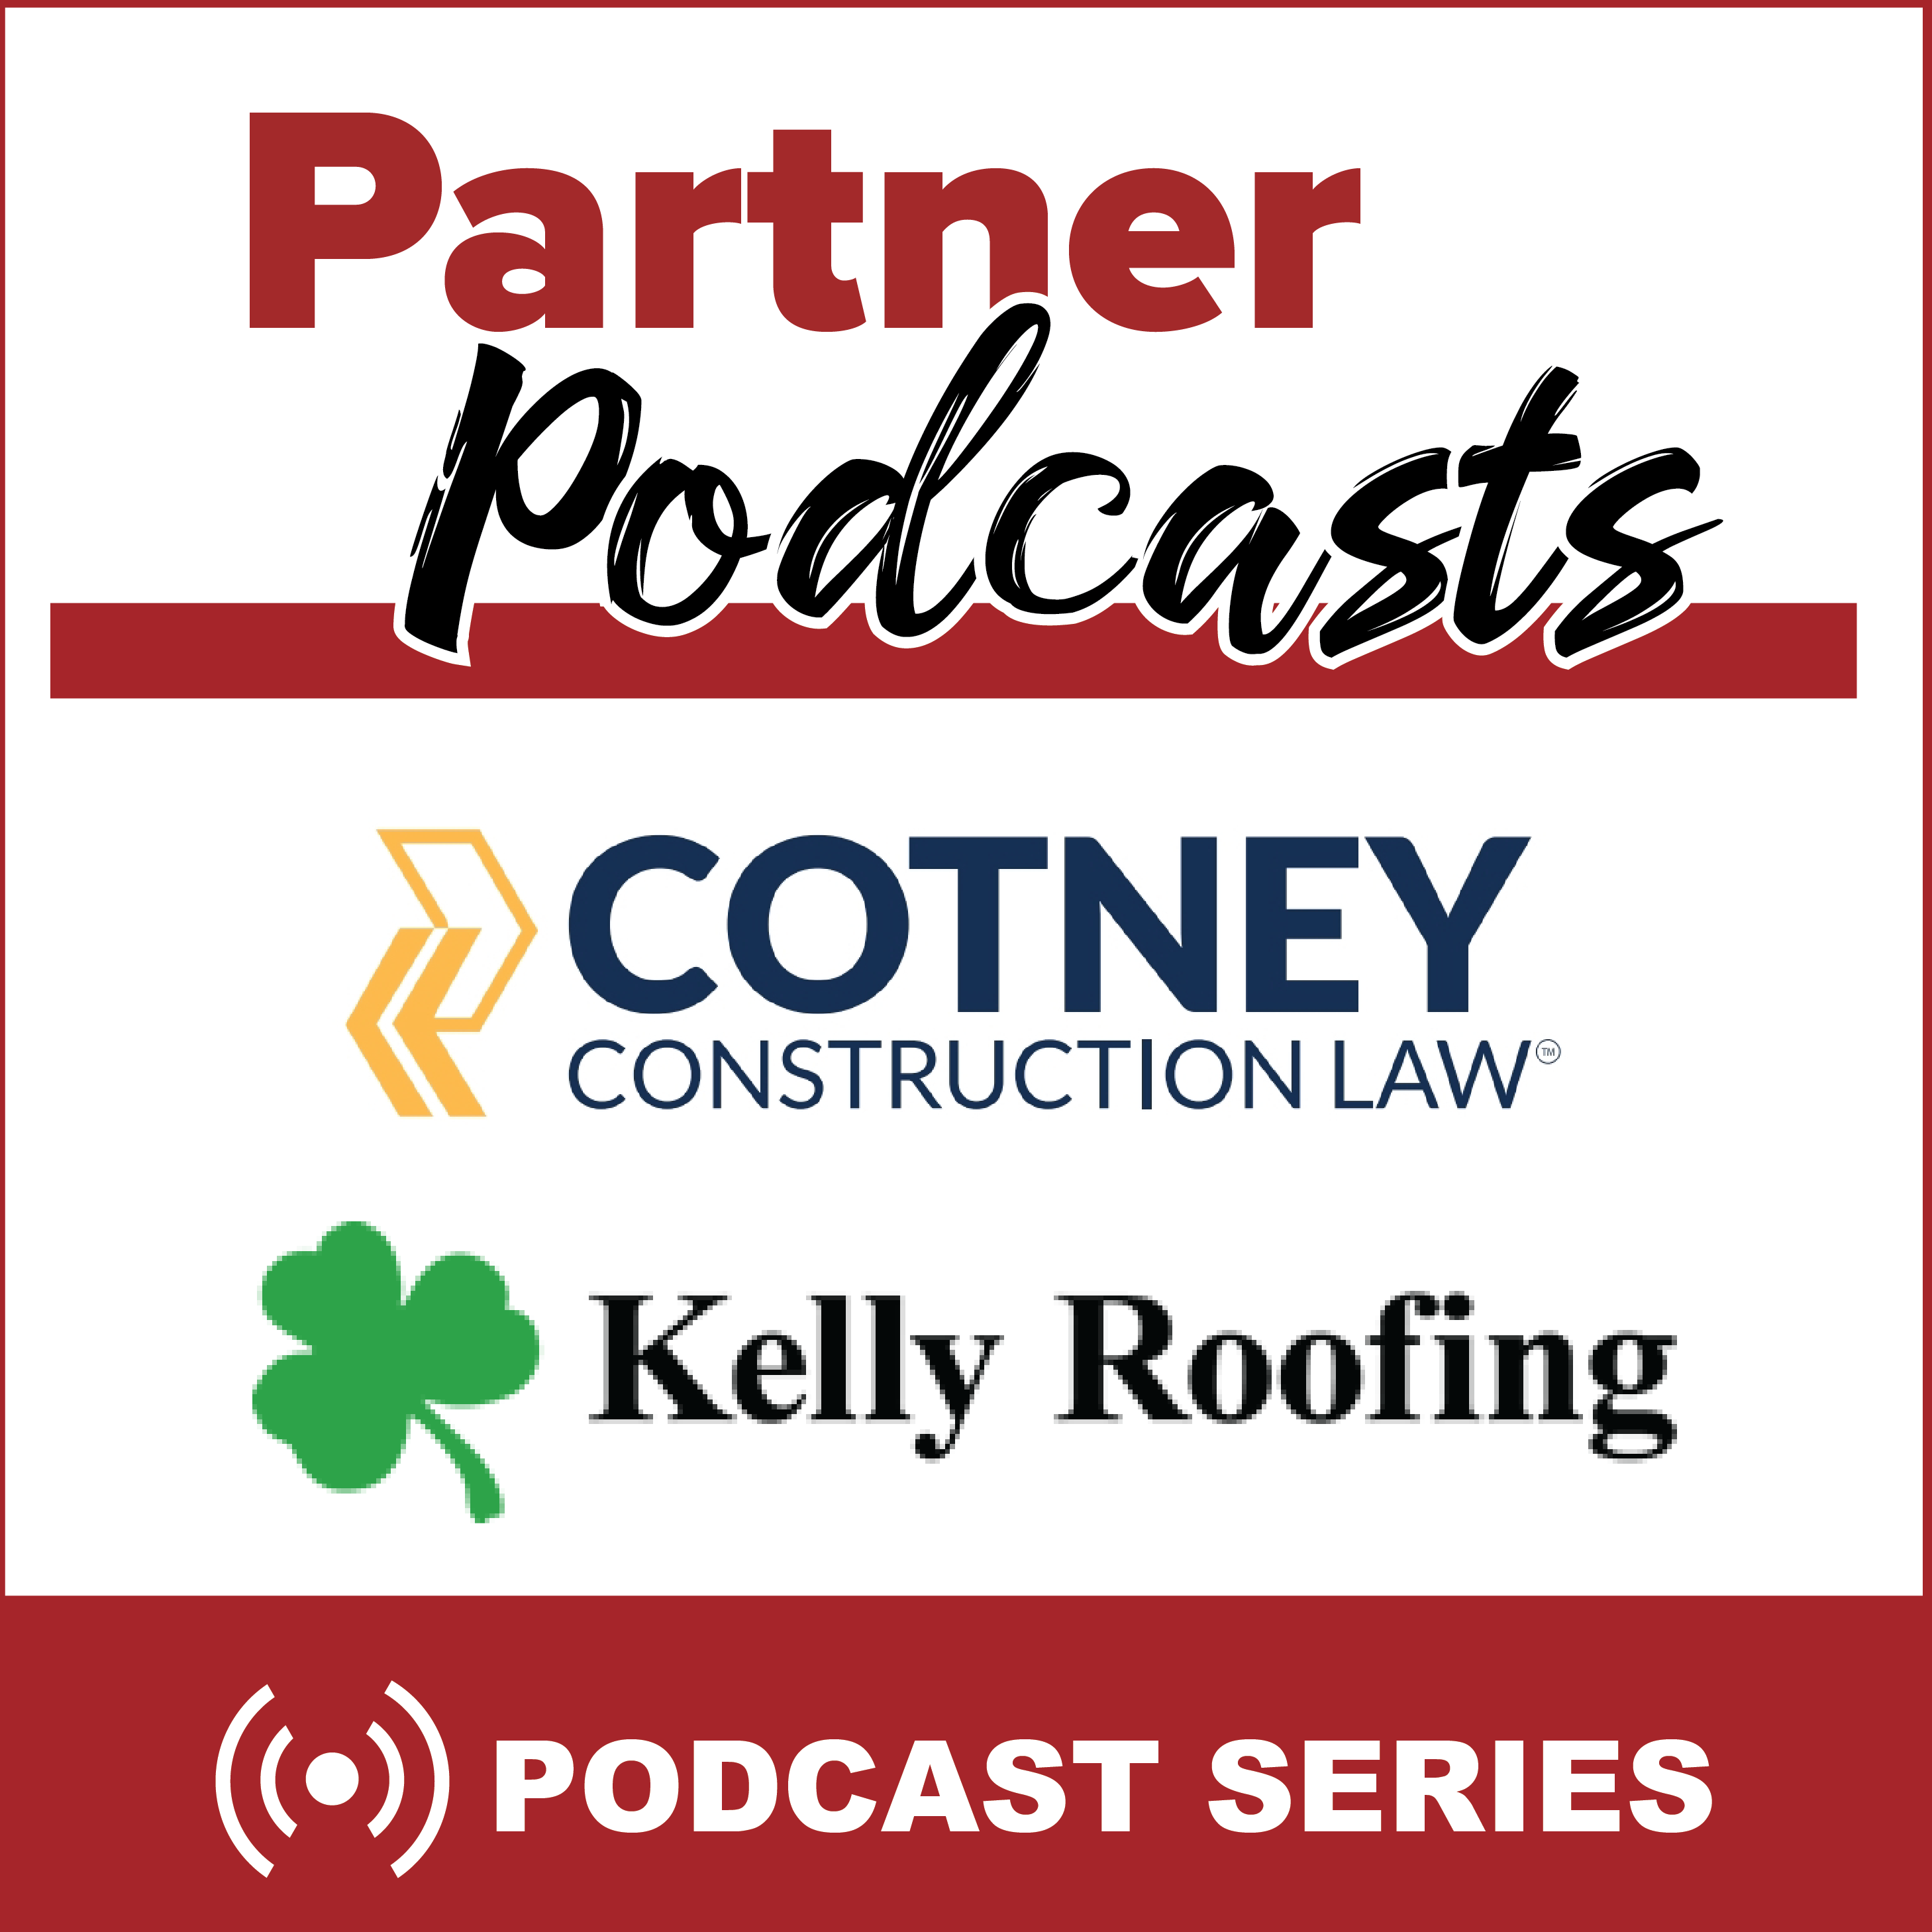 RCS Partner Podcast- Trent Cotney & Kelly Roofing